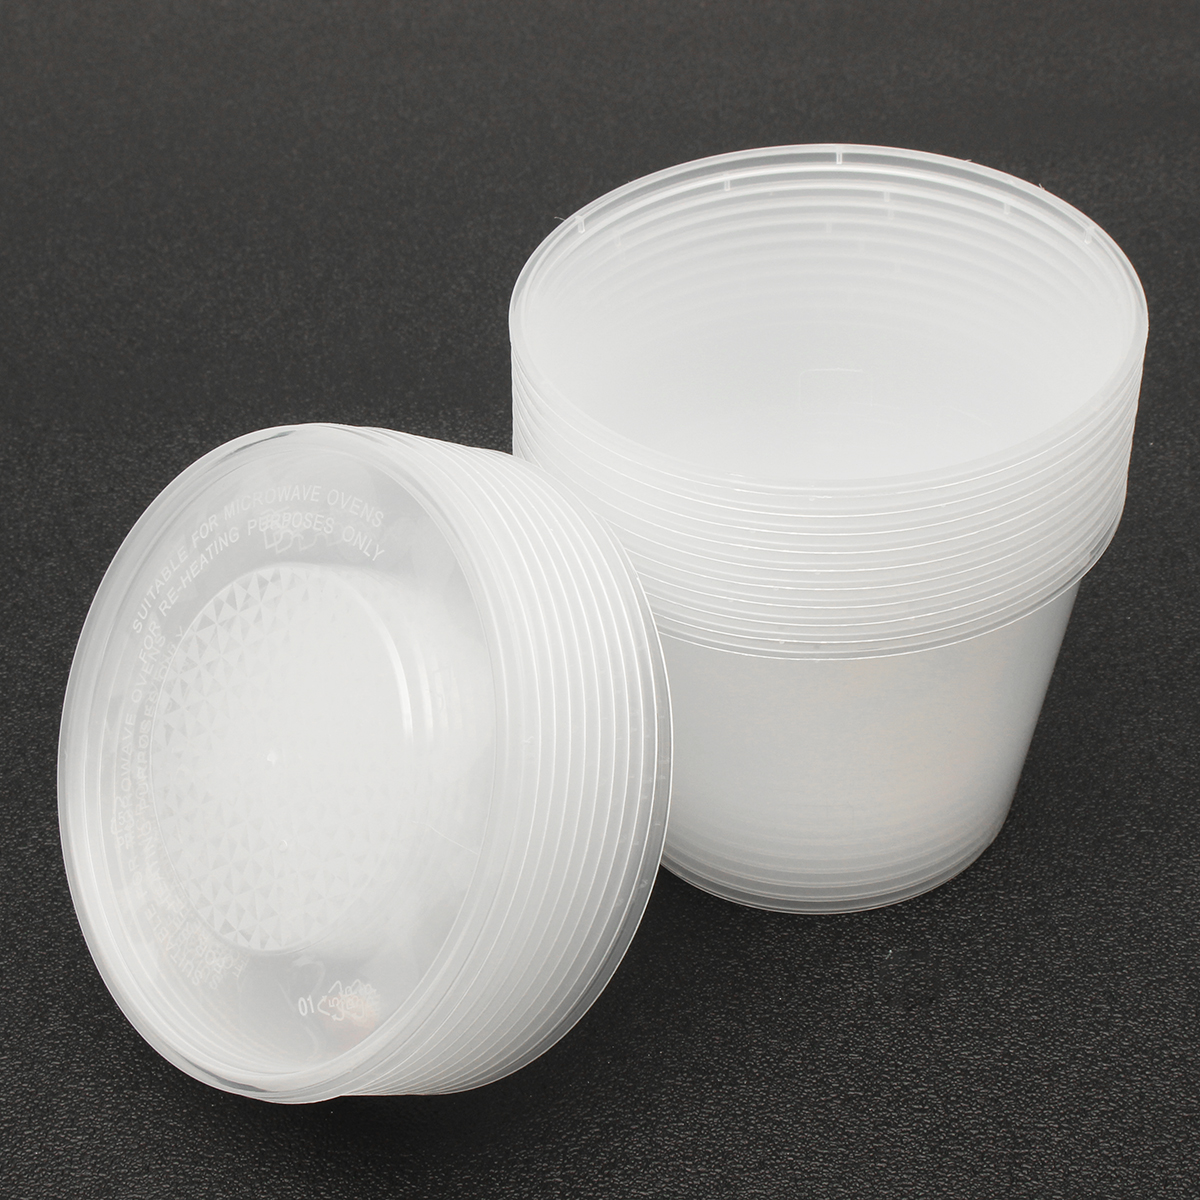 10Pcs 16oz Transparent Plastic Disposable Cups Boxes Soup Food Restaurant Storage Container Cup